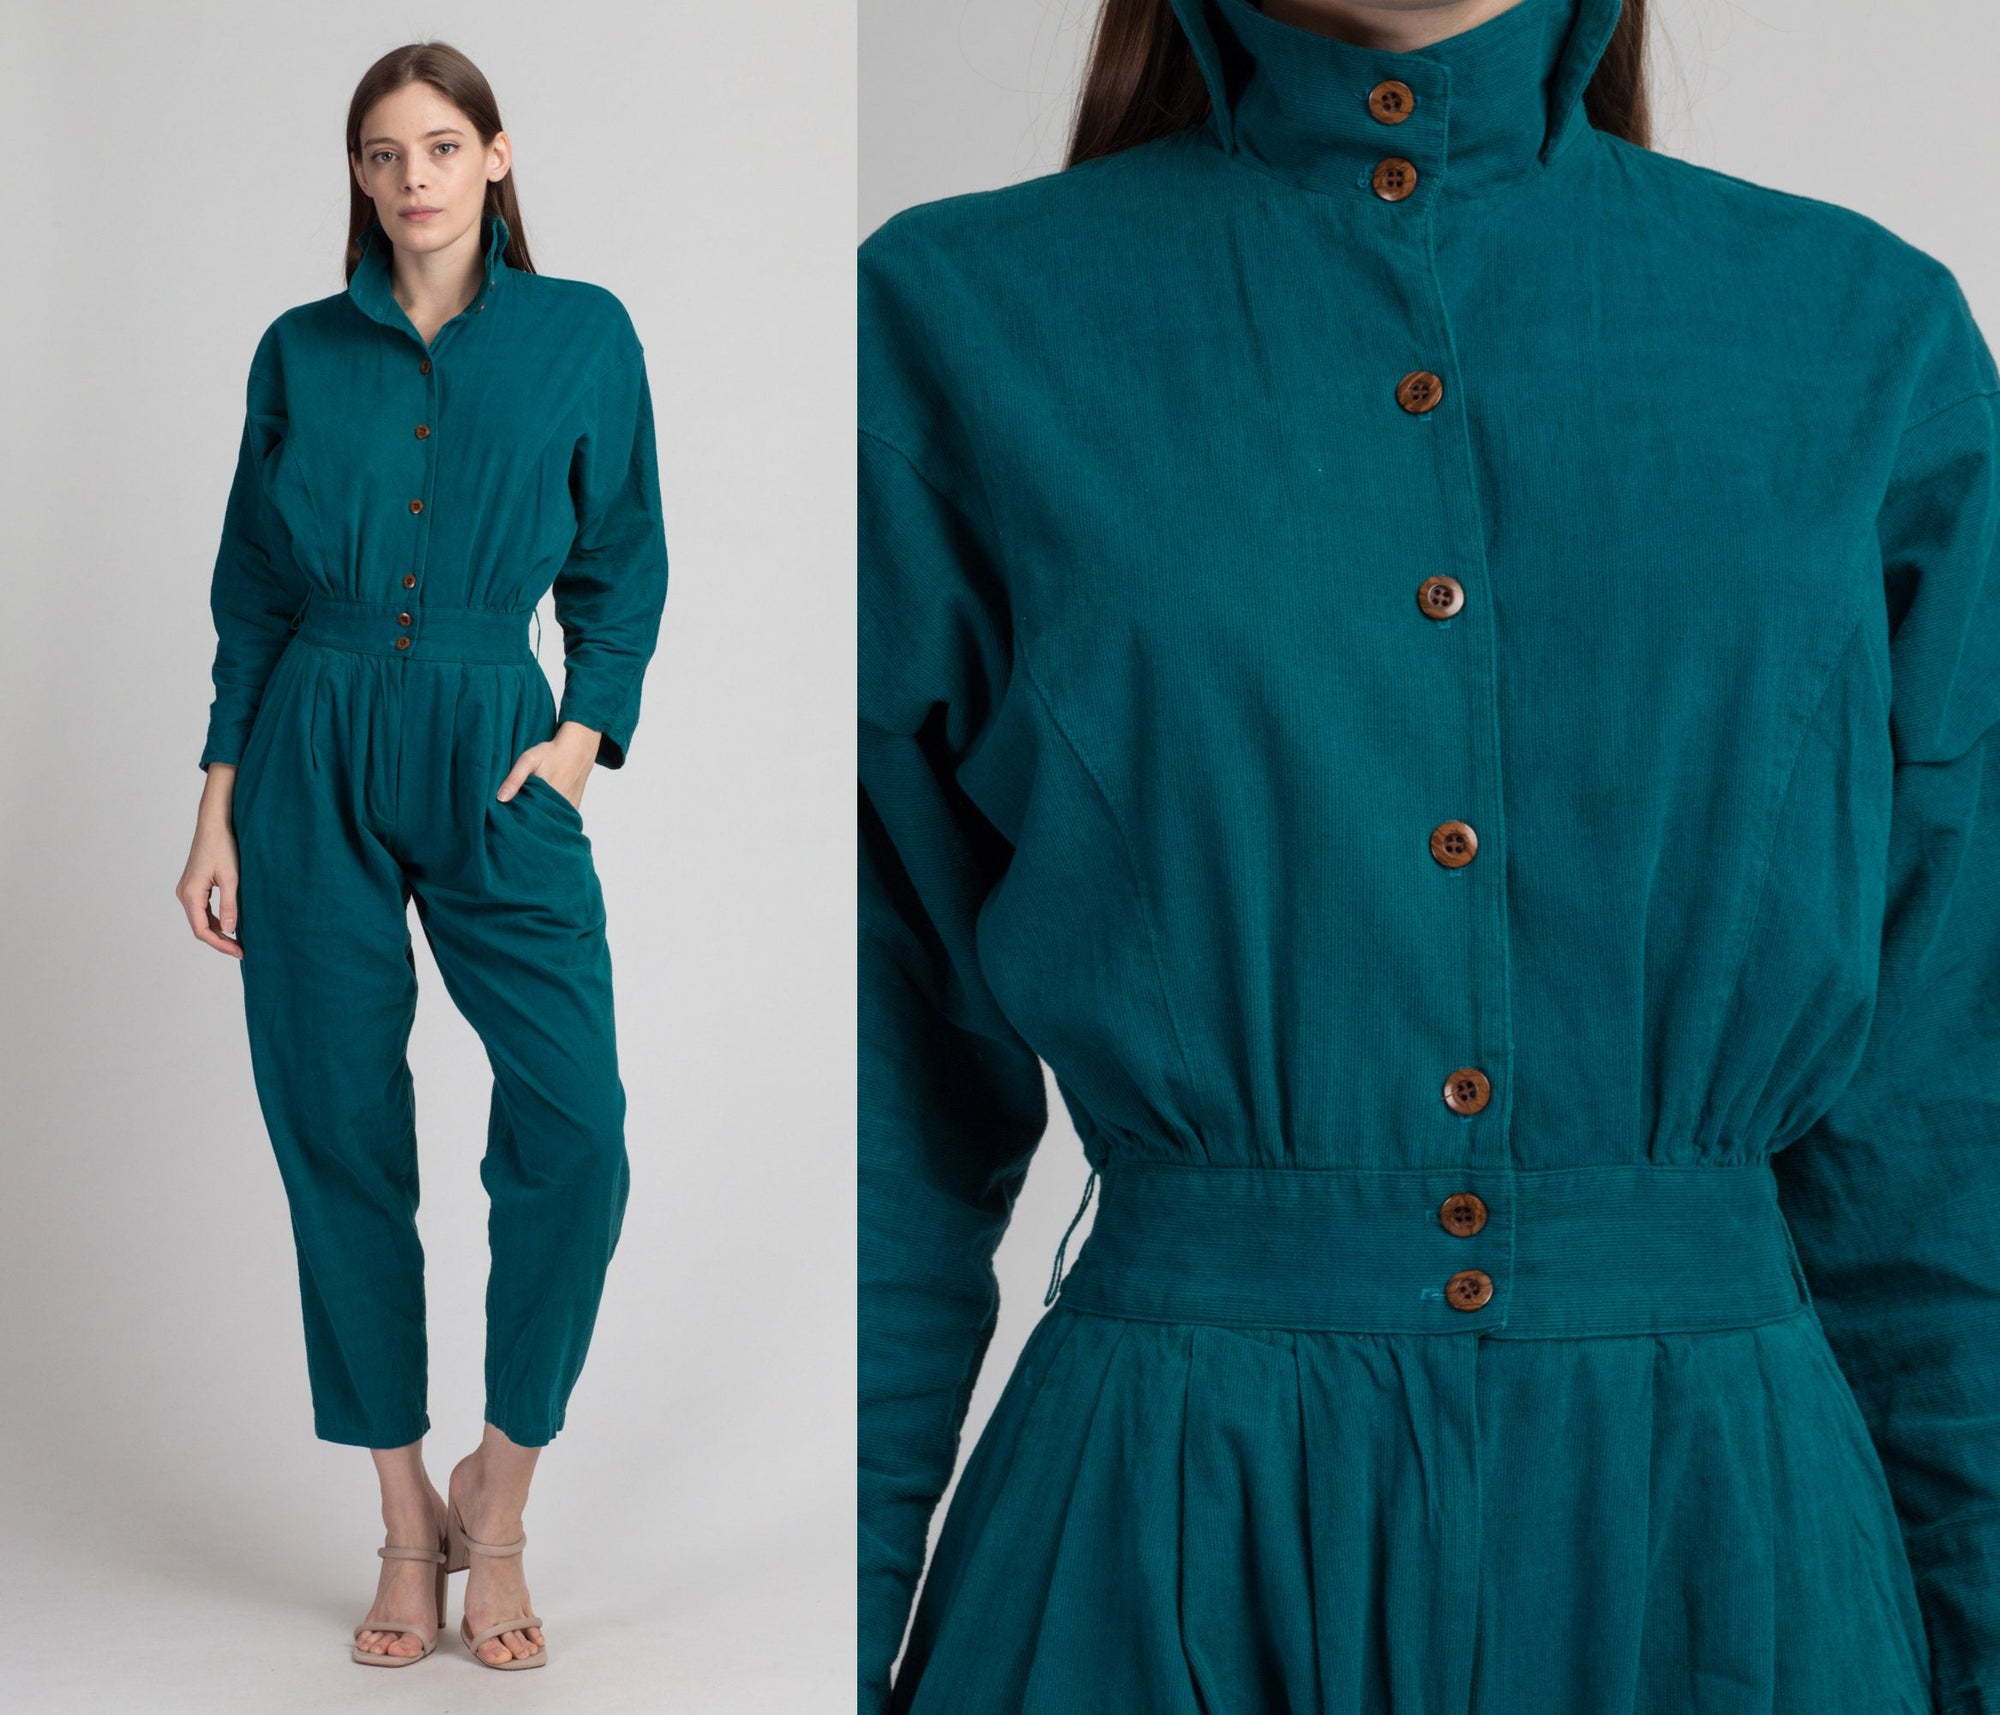 80s Teal Corduroy Fitted Waist Jumpsuit - Small to Medium | Vintage Button Up Long Sleeve Collared Outfit